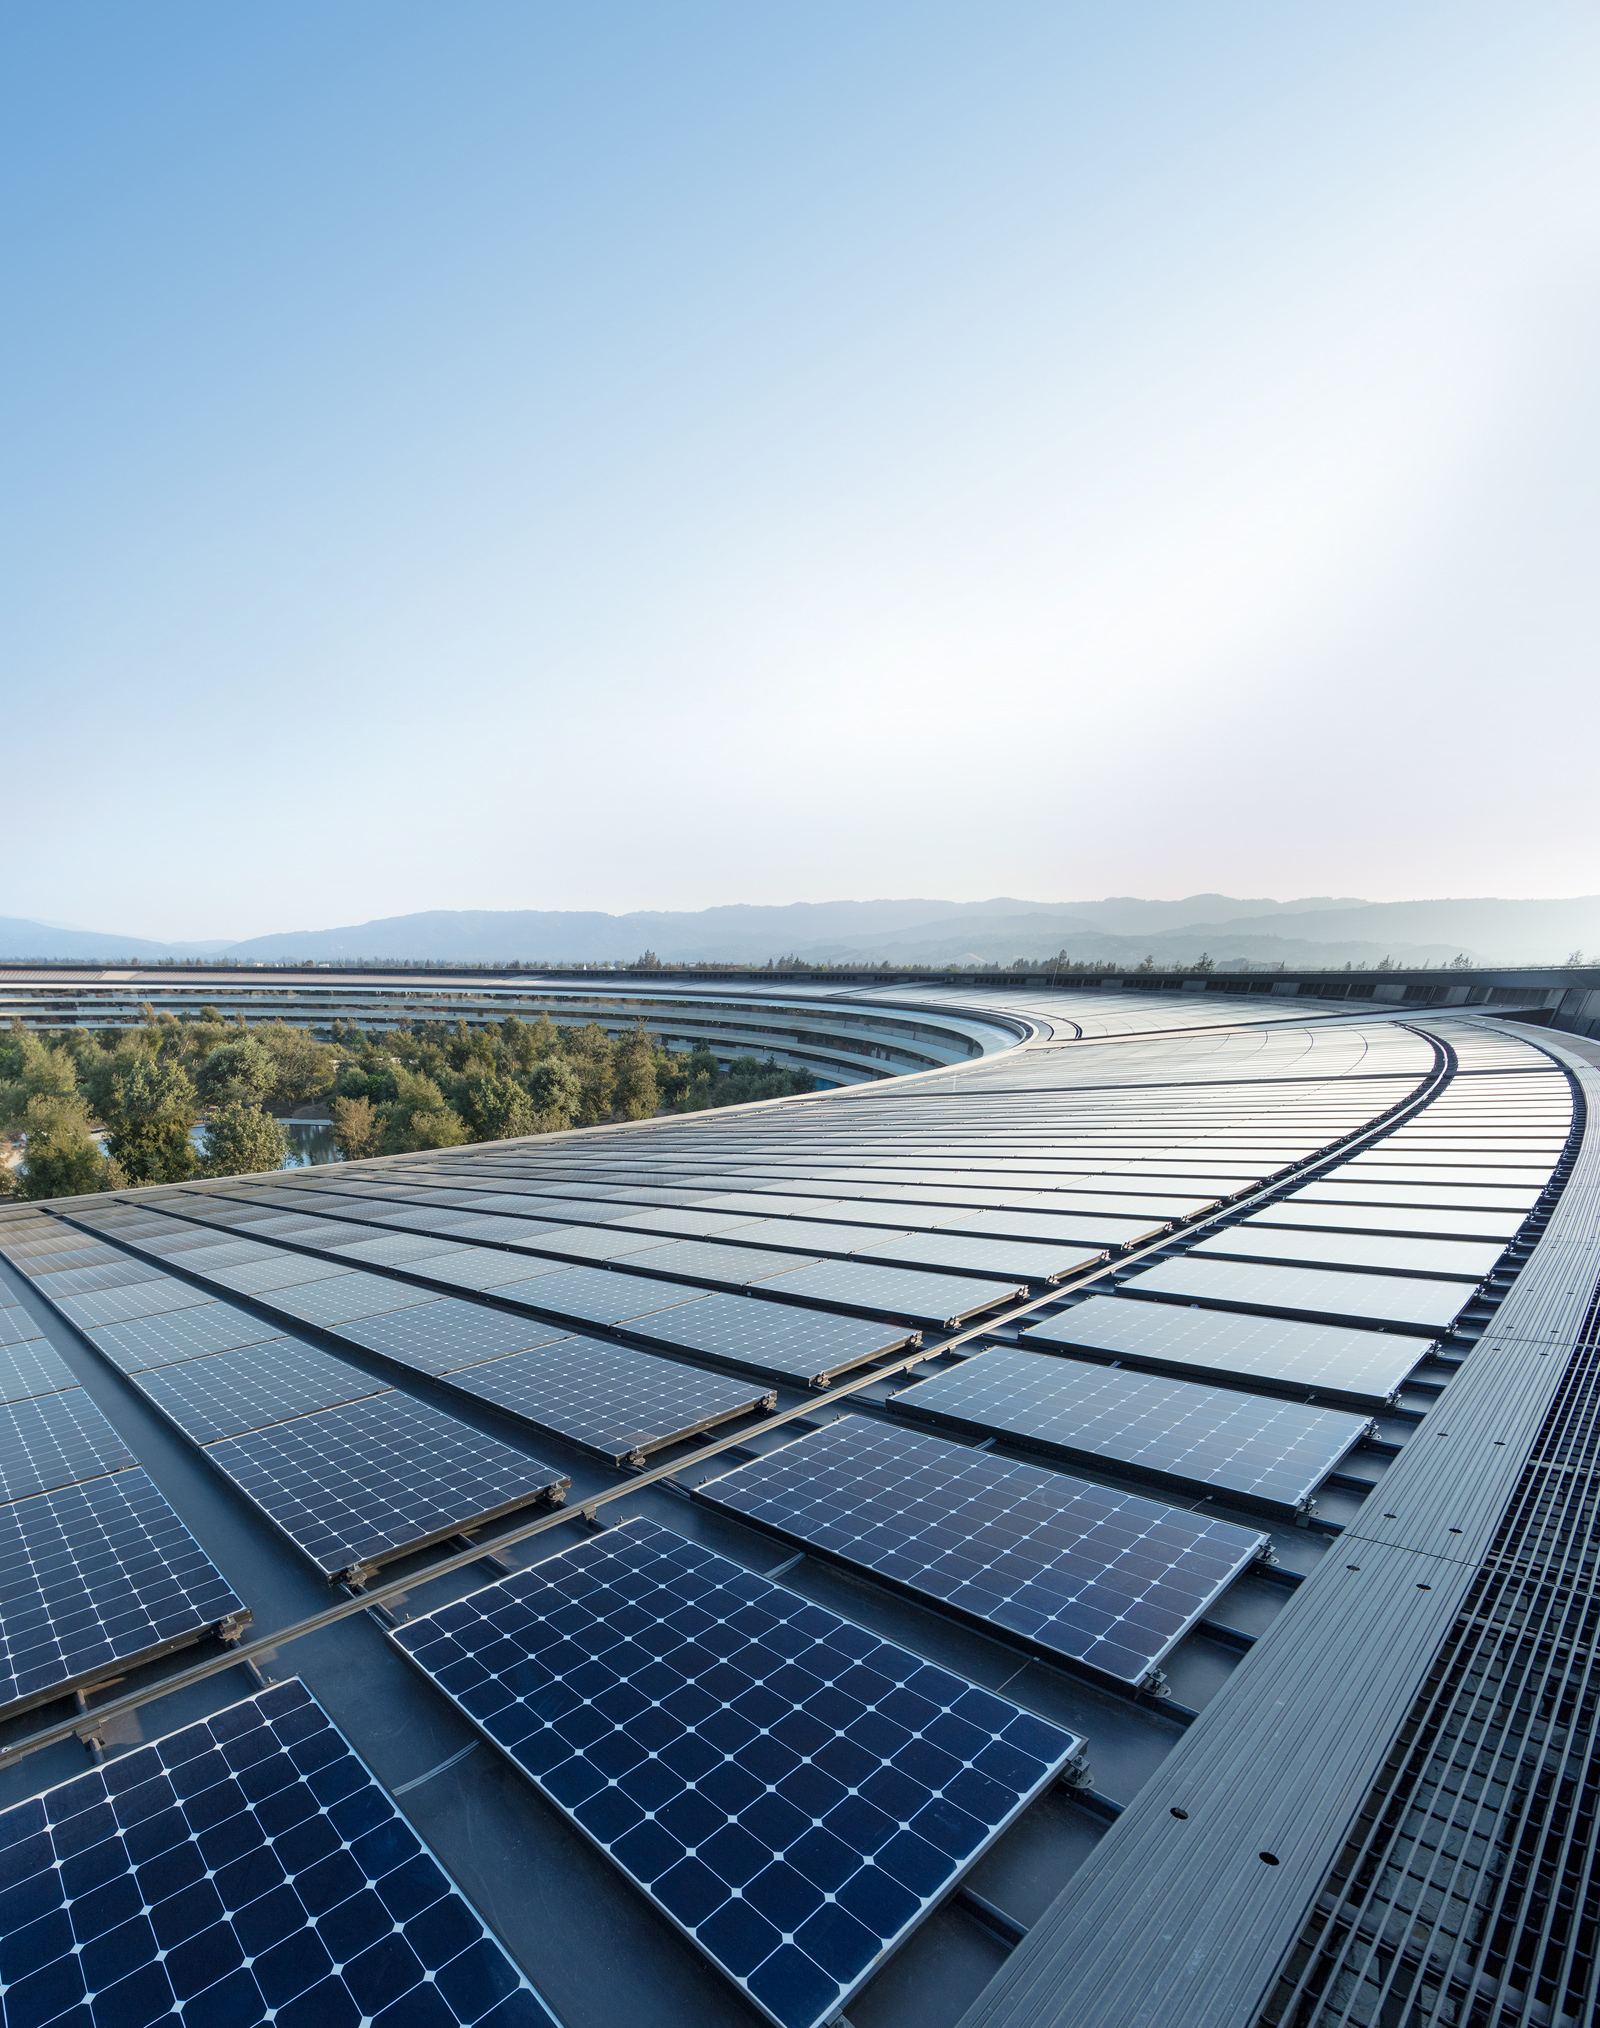 The rooftop solar installation at Apple Park helps power the building with 100 percent renewable energy